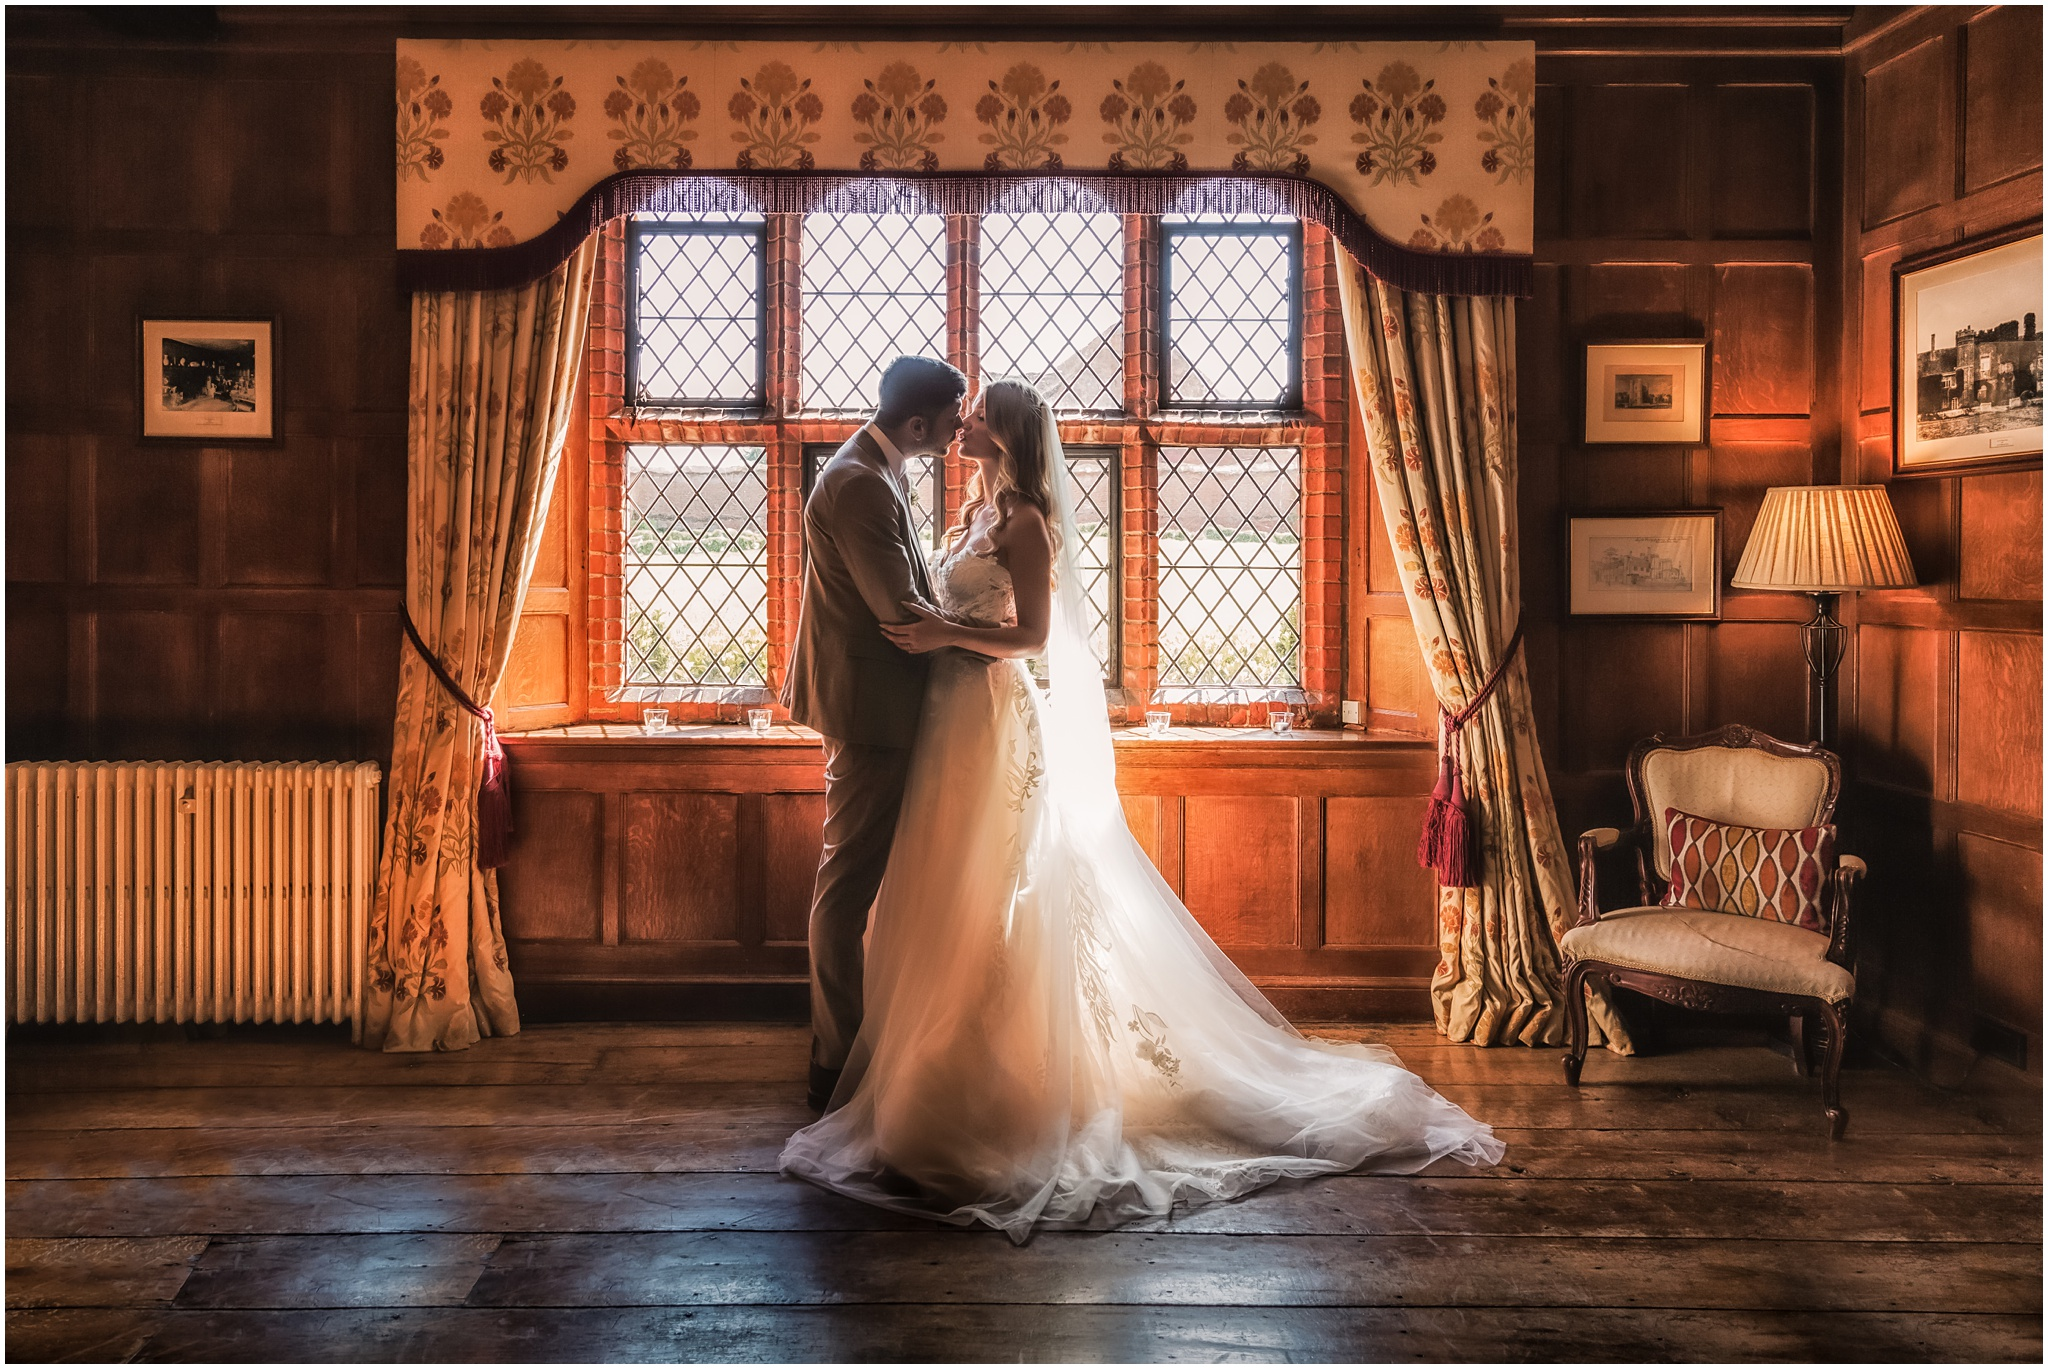 Bride-and-groom-kiss-in-a-room-at-Leez-Priory-wedding-venue